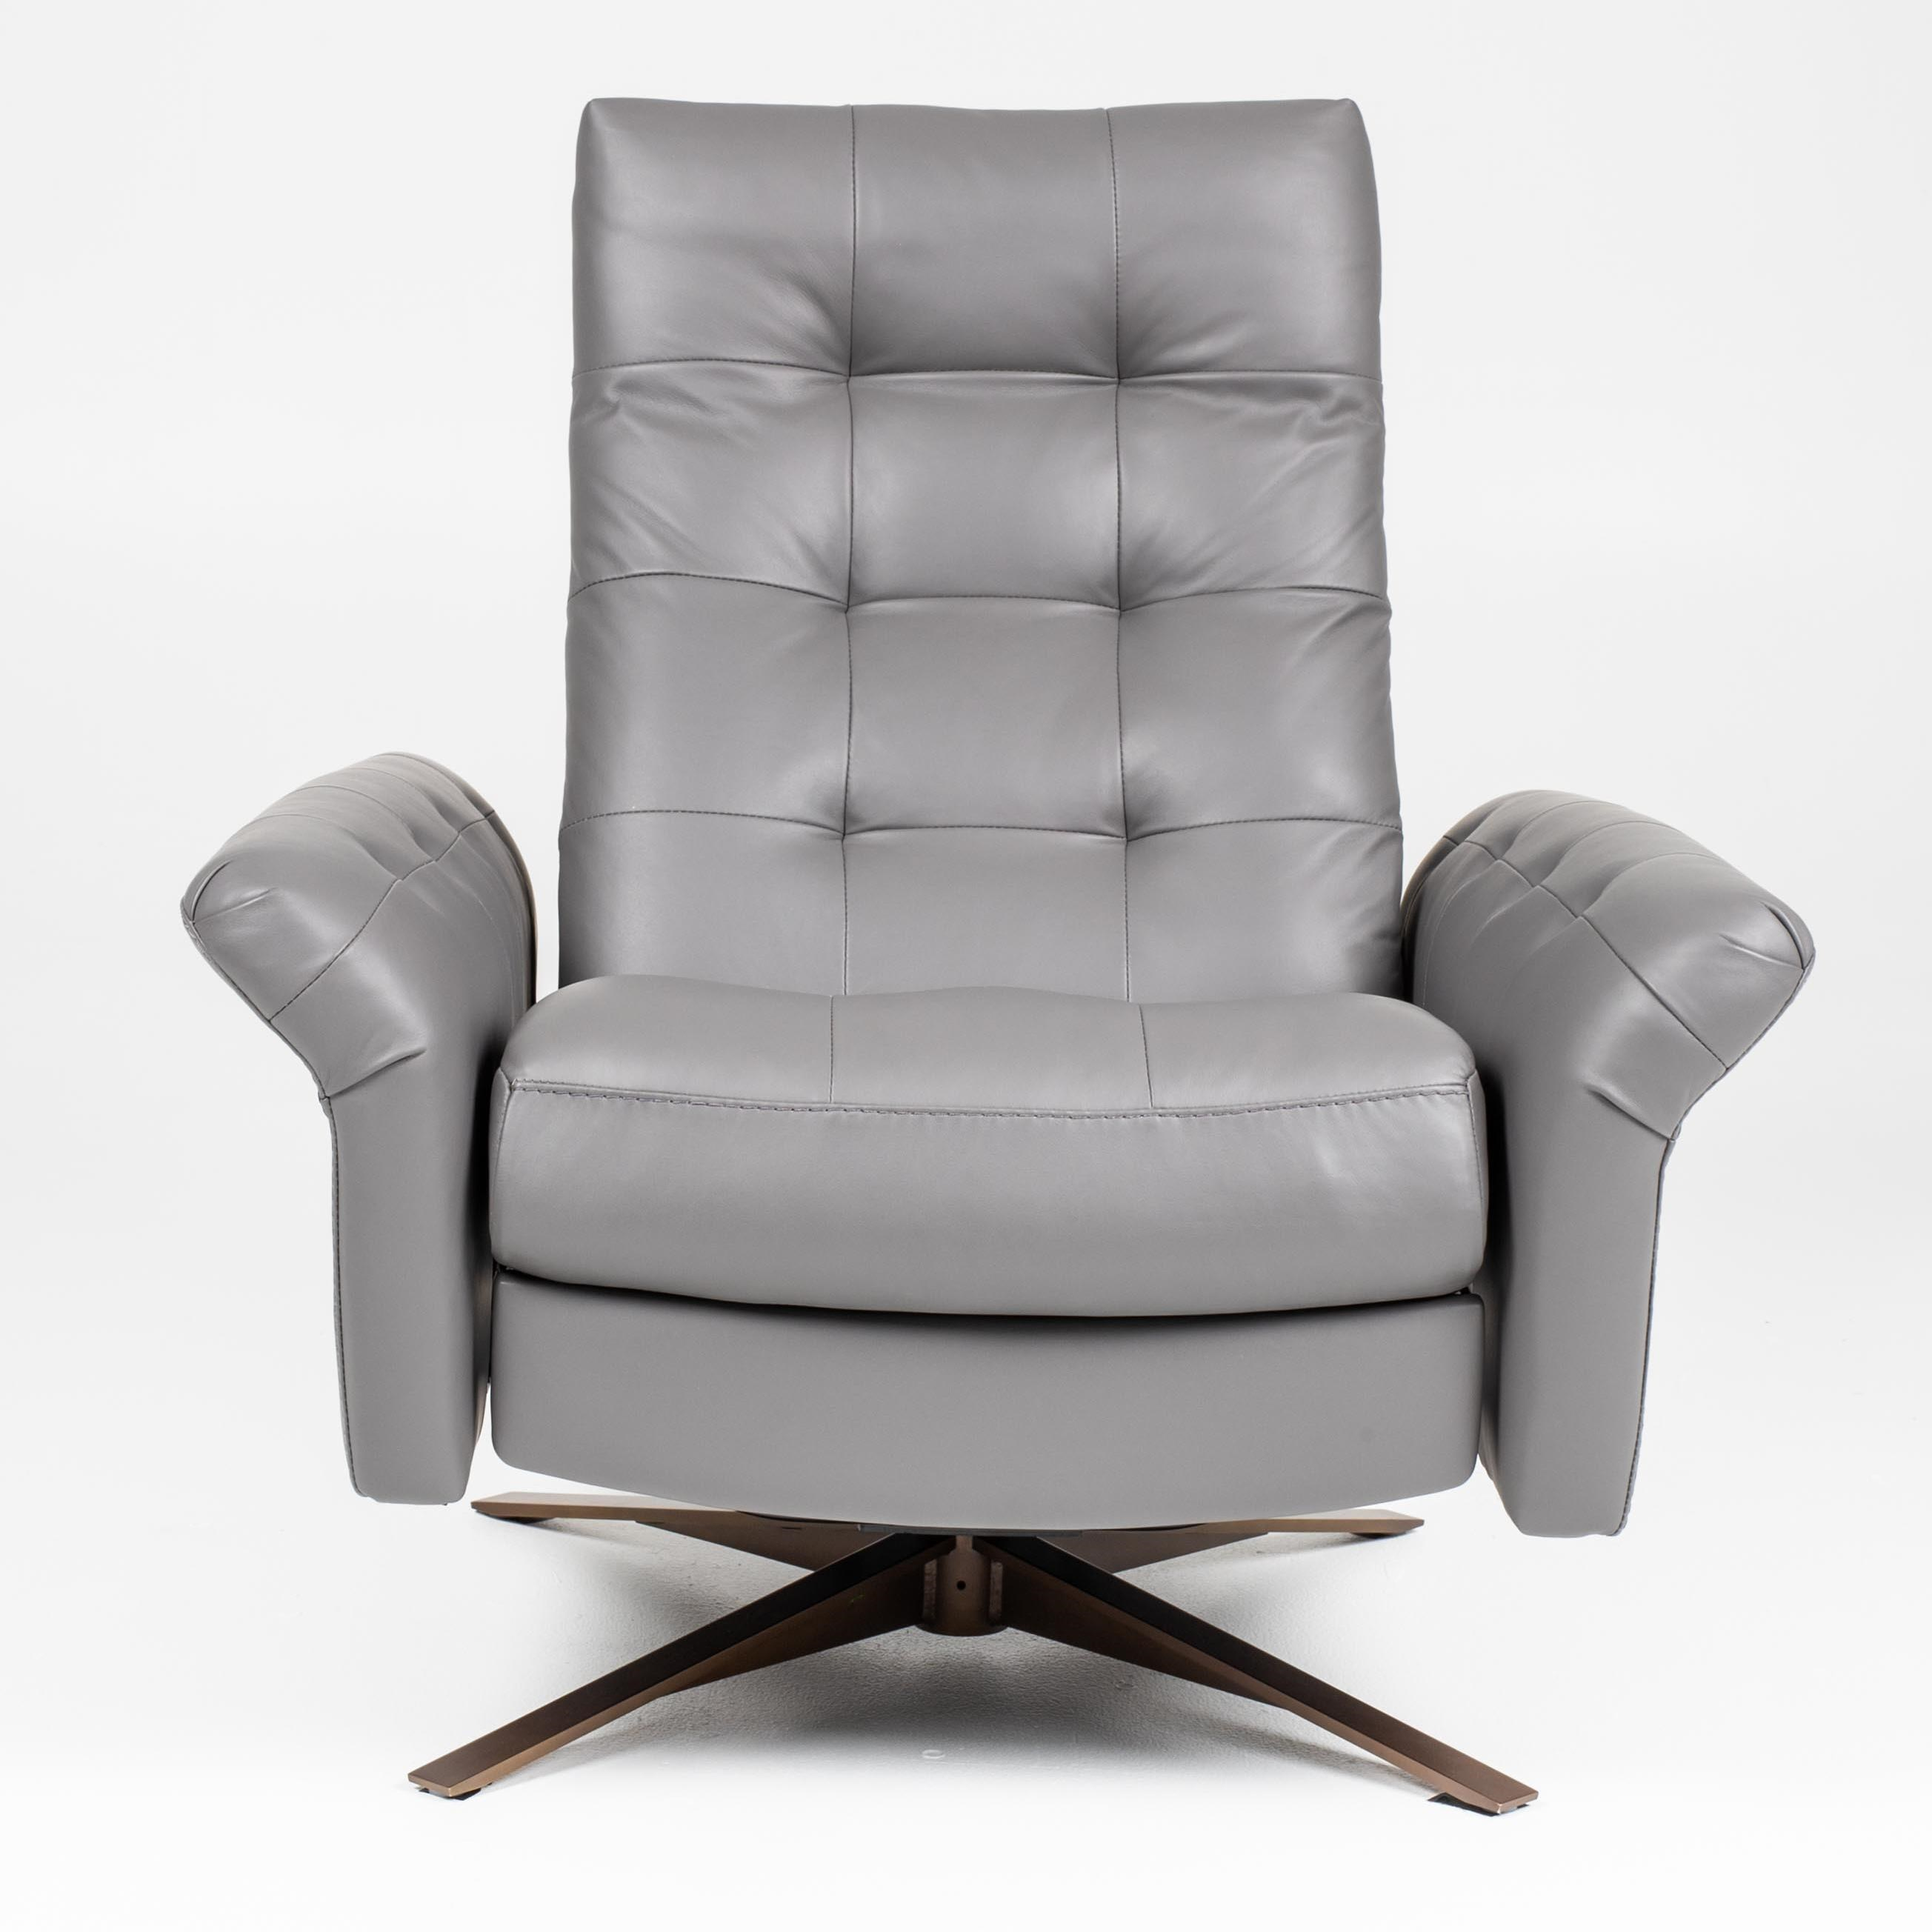 Pileus Swivel Glider Recliner - Large by American Leather at Williams & Kay